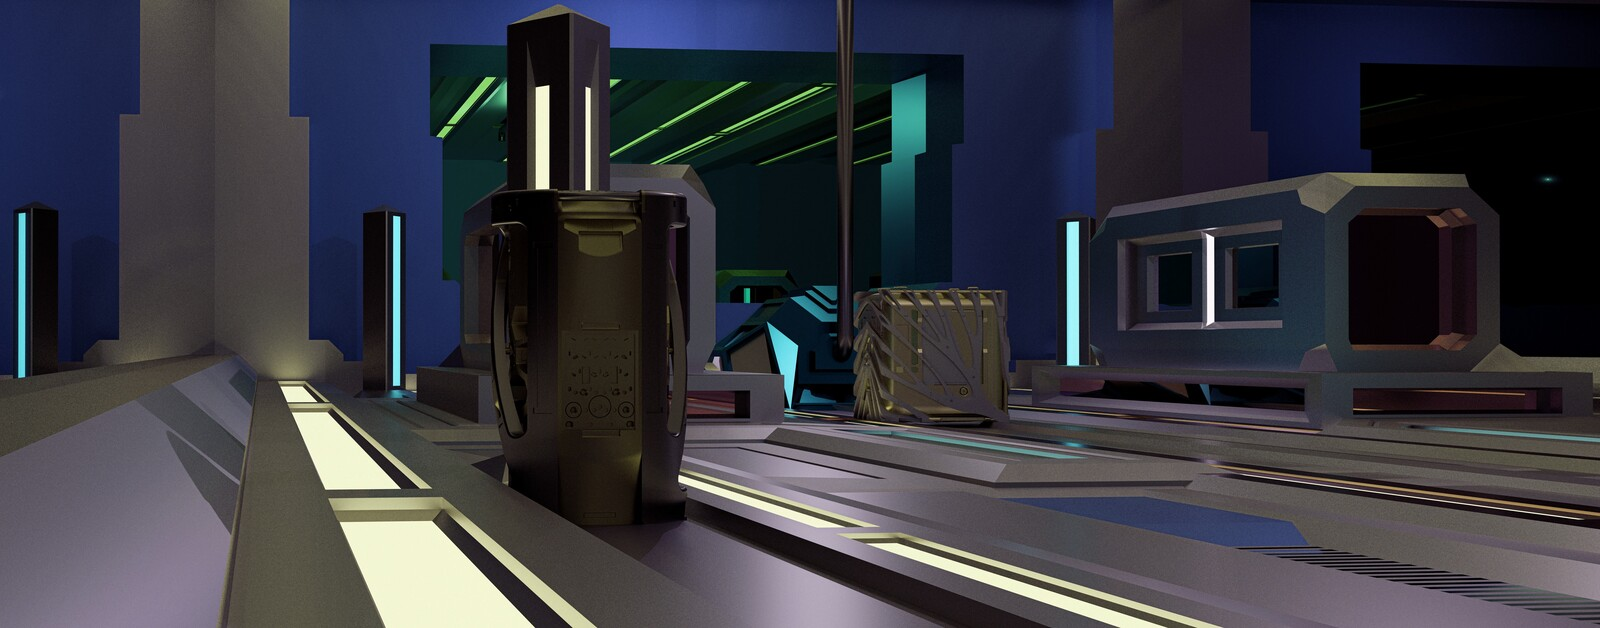 Industrial Inisthereal Celestiod Test Scifi cylindroid prototest mirrornetheridustrial Visualiser